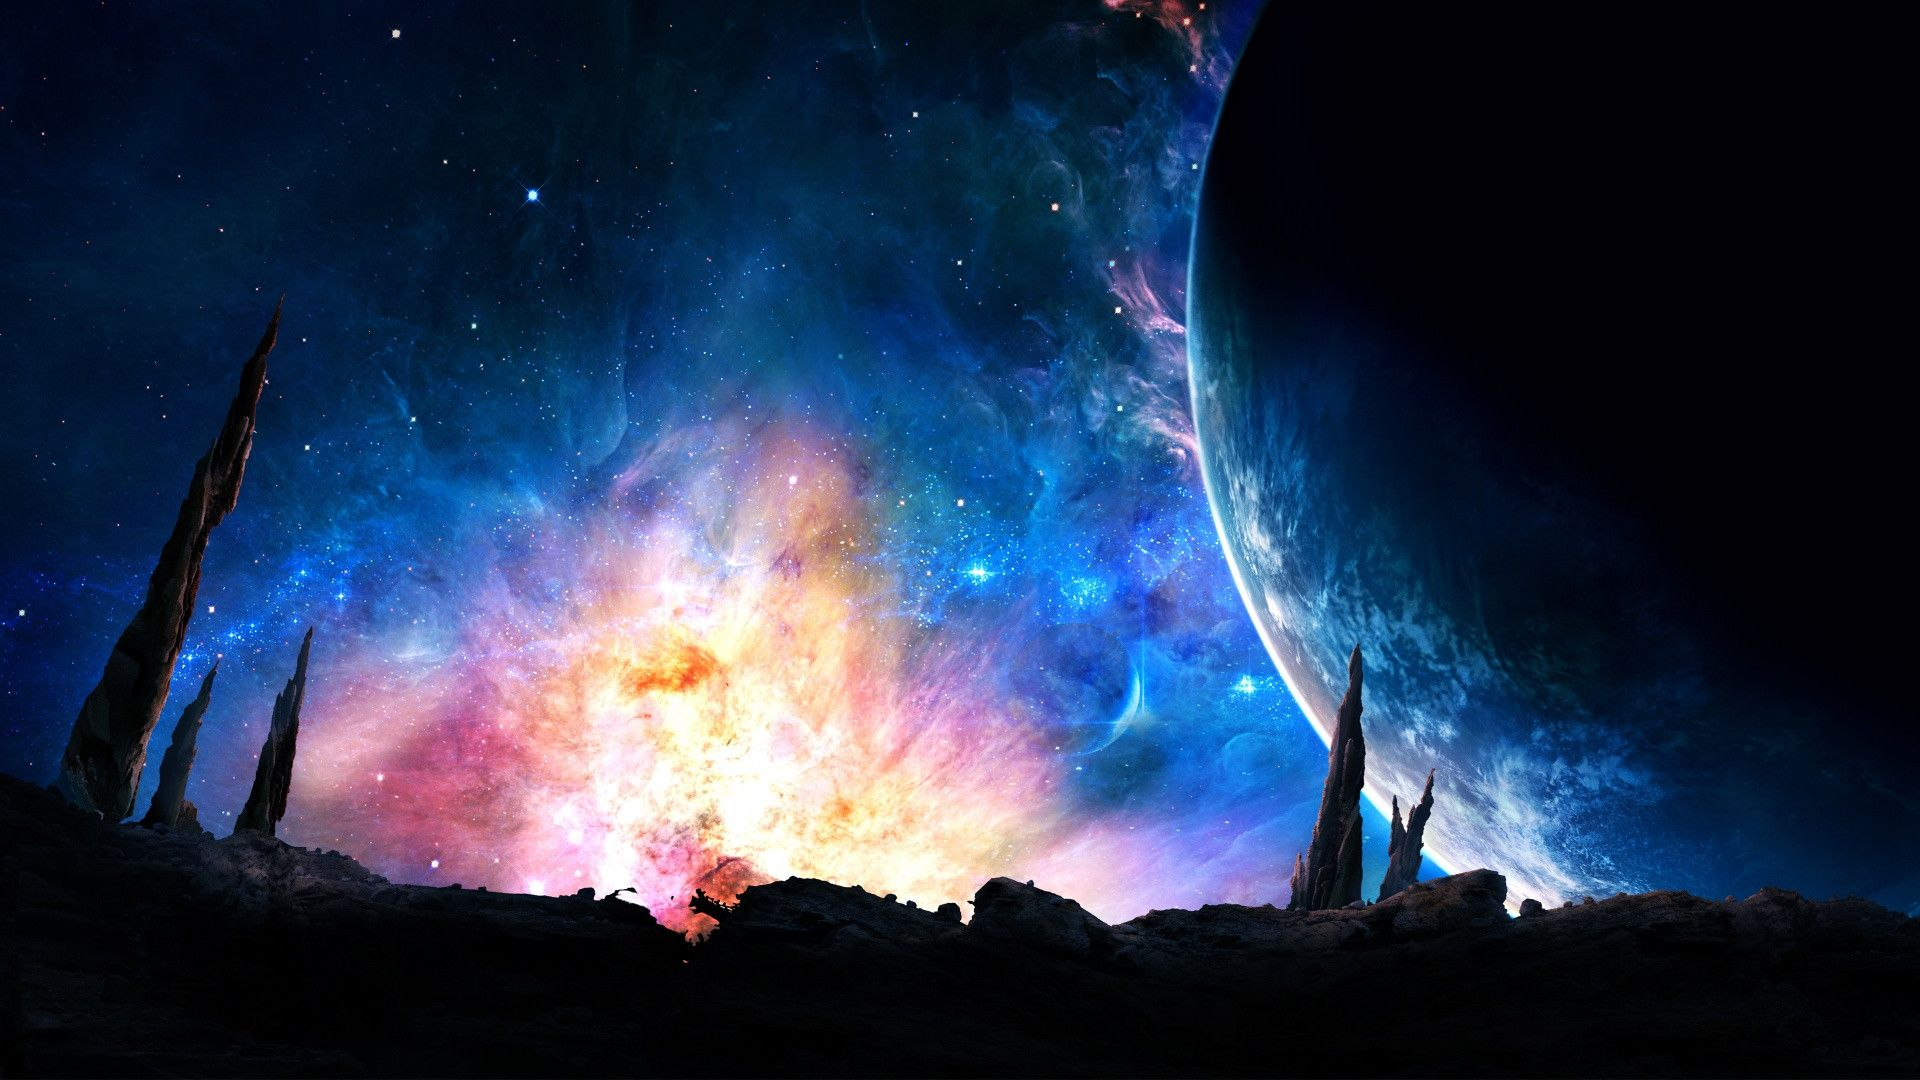 tumblr 1080p hd wallpapers - hd images new | fantasy | pinterest